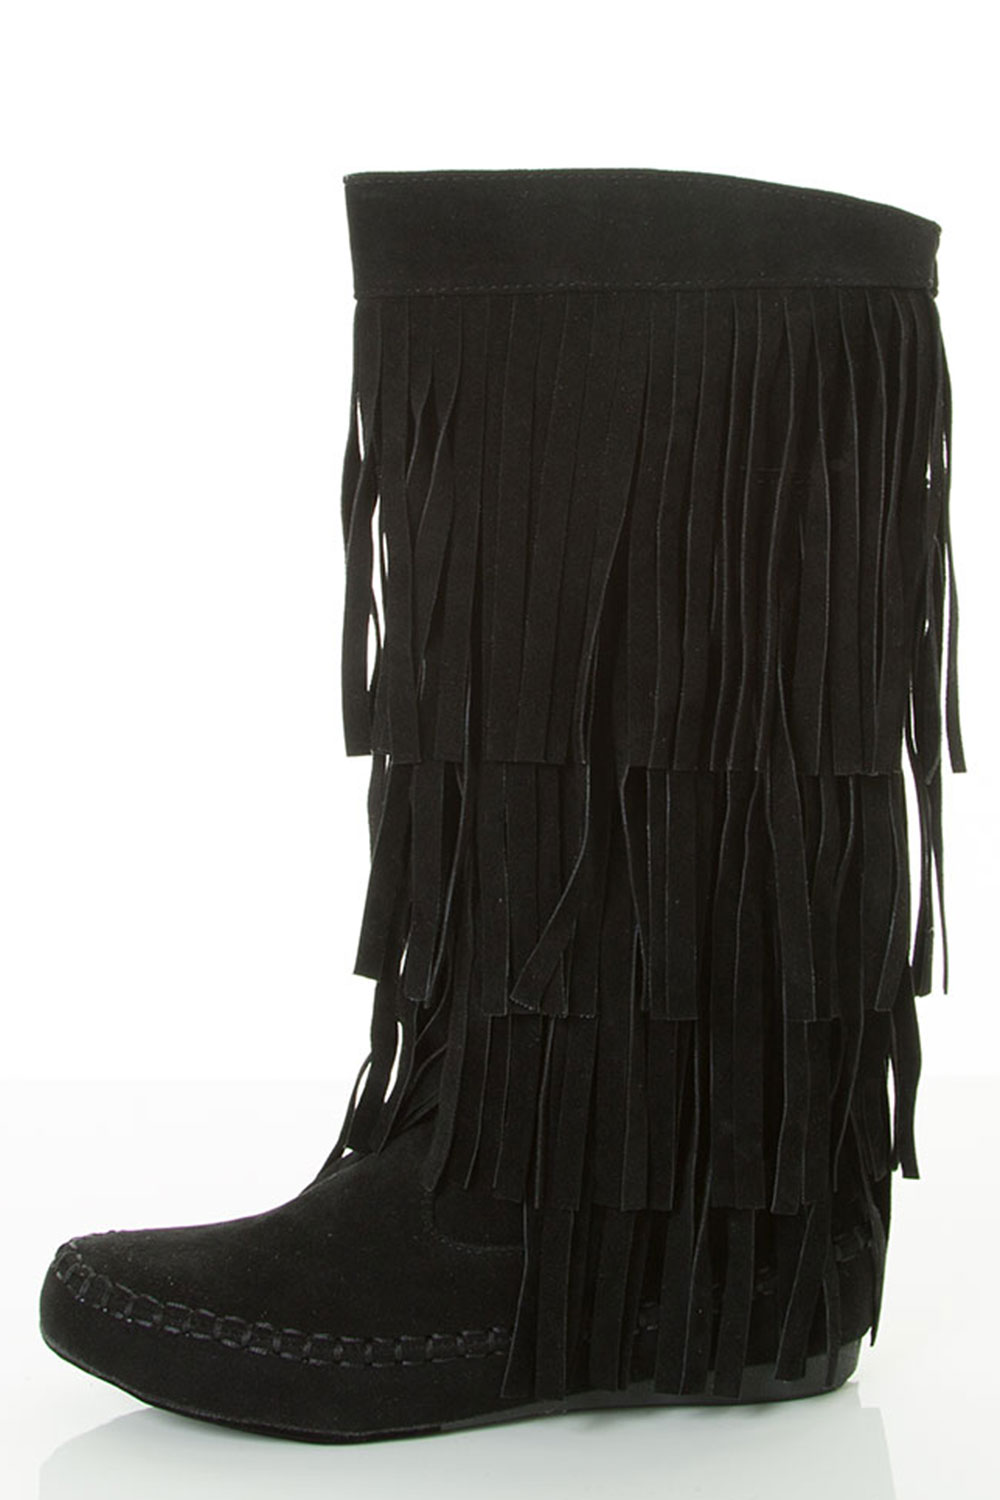 Round Toe Mid-Calf Height Flat Heel Fringe Layer Accent Boots